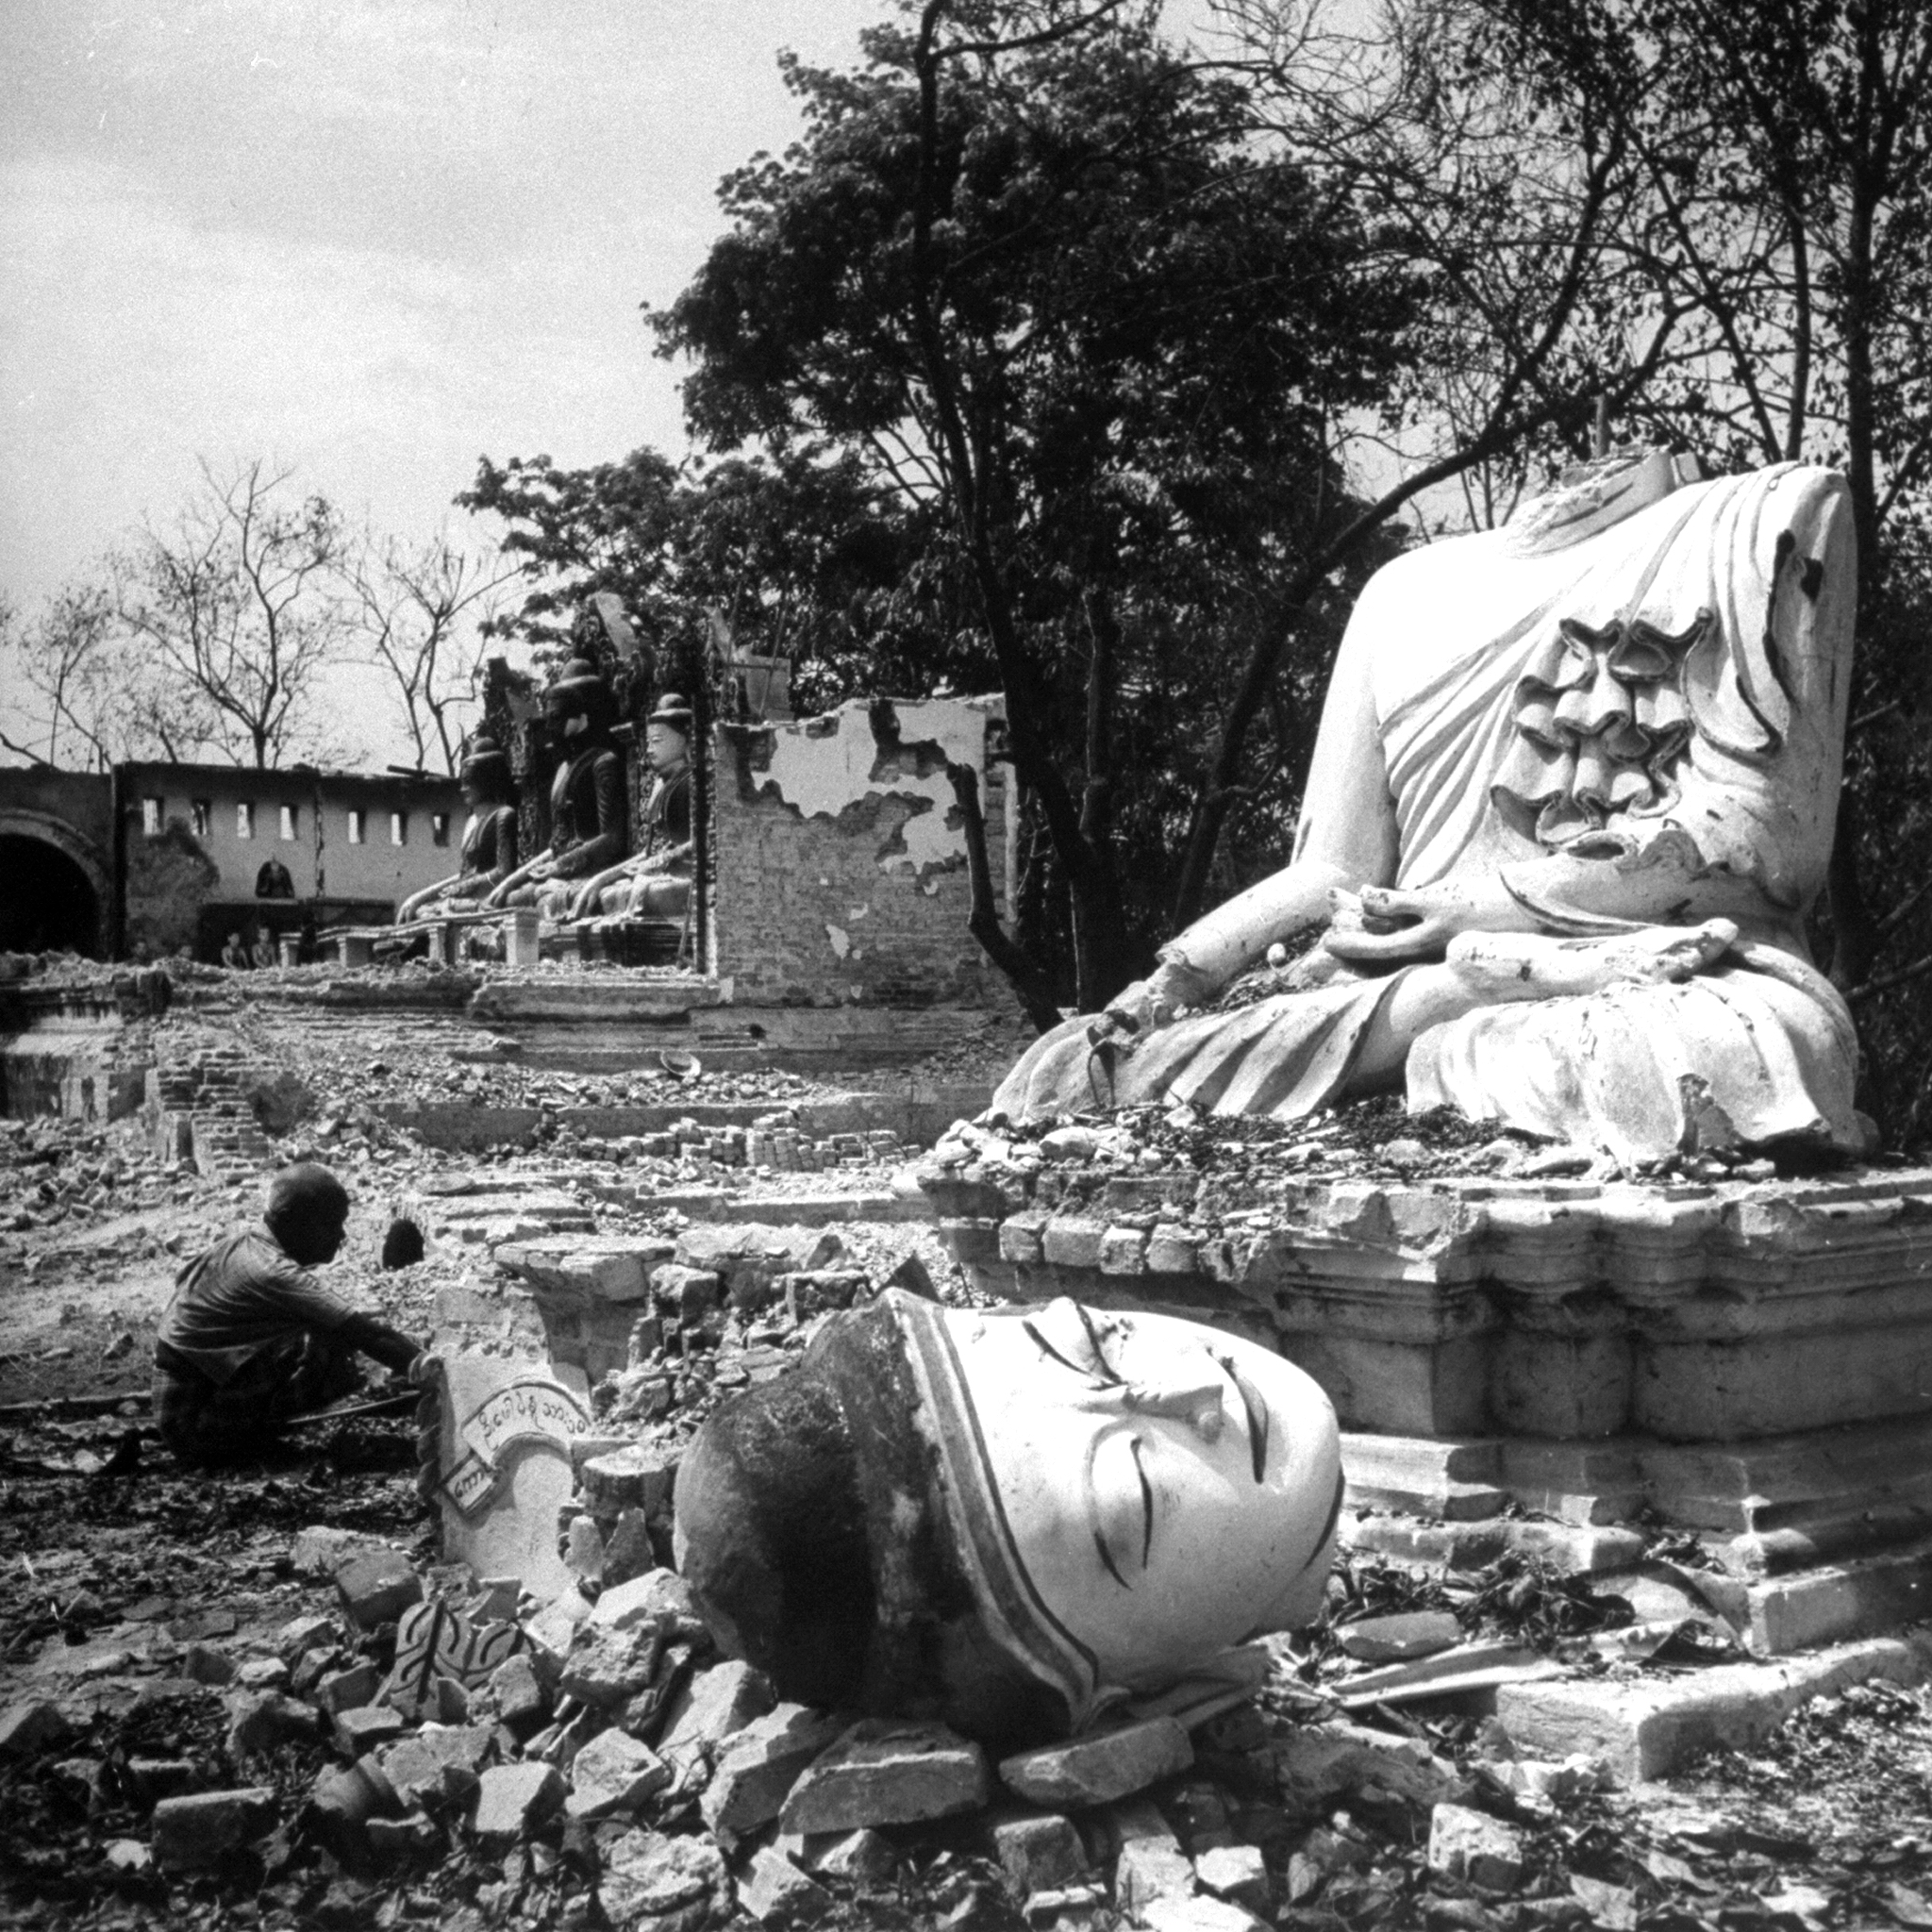 Caption from LIFE. In the rubble of a Buddhist temple destroyed by Baptist Karens, a Buddha's head lies serenely where it fell during the Battle for Bassein.